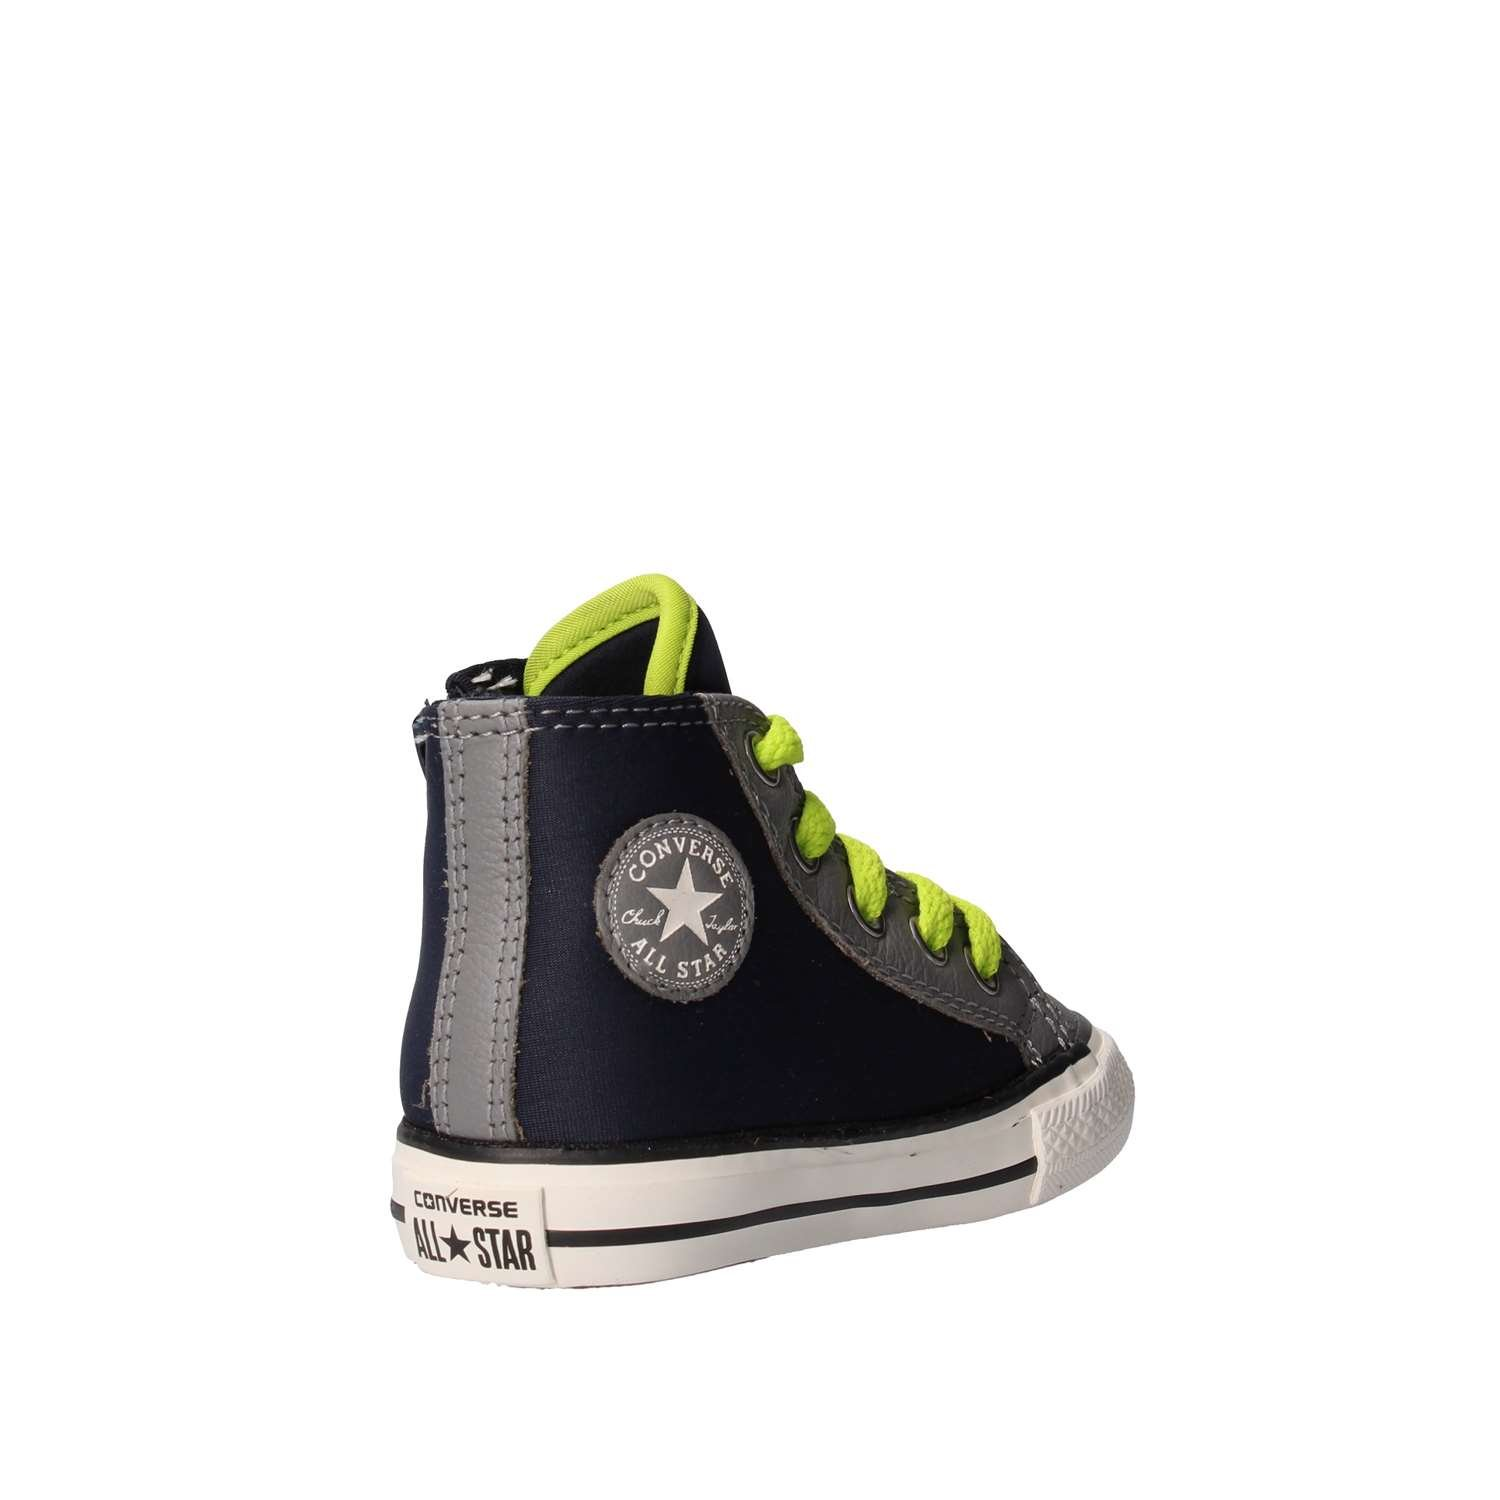 a1e086e9d163f0 Converse Chuck Taylor All Star Side Zip Hi Shoes Sneakers- Obsidian Mason Lime  (4 Toddler)  Buy Online at Low Prices in India - Amazon.in